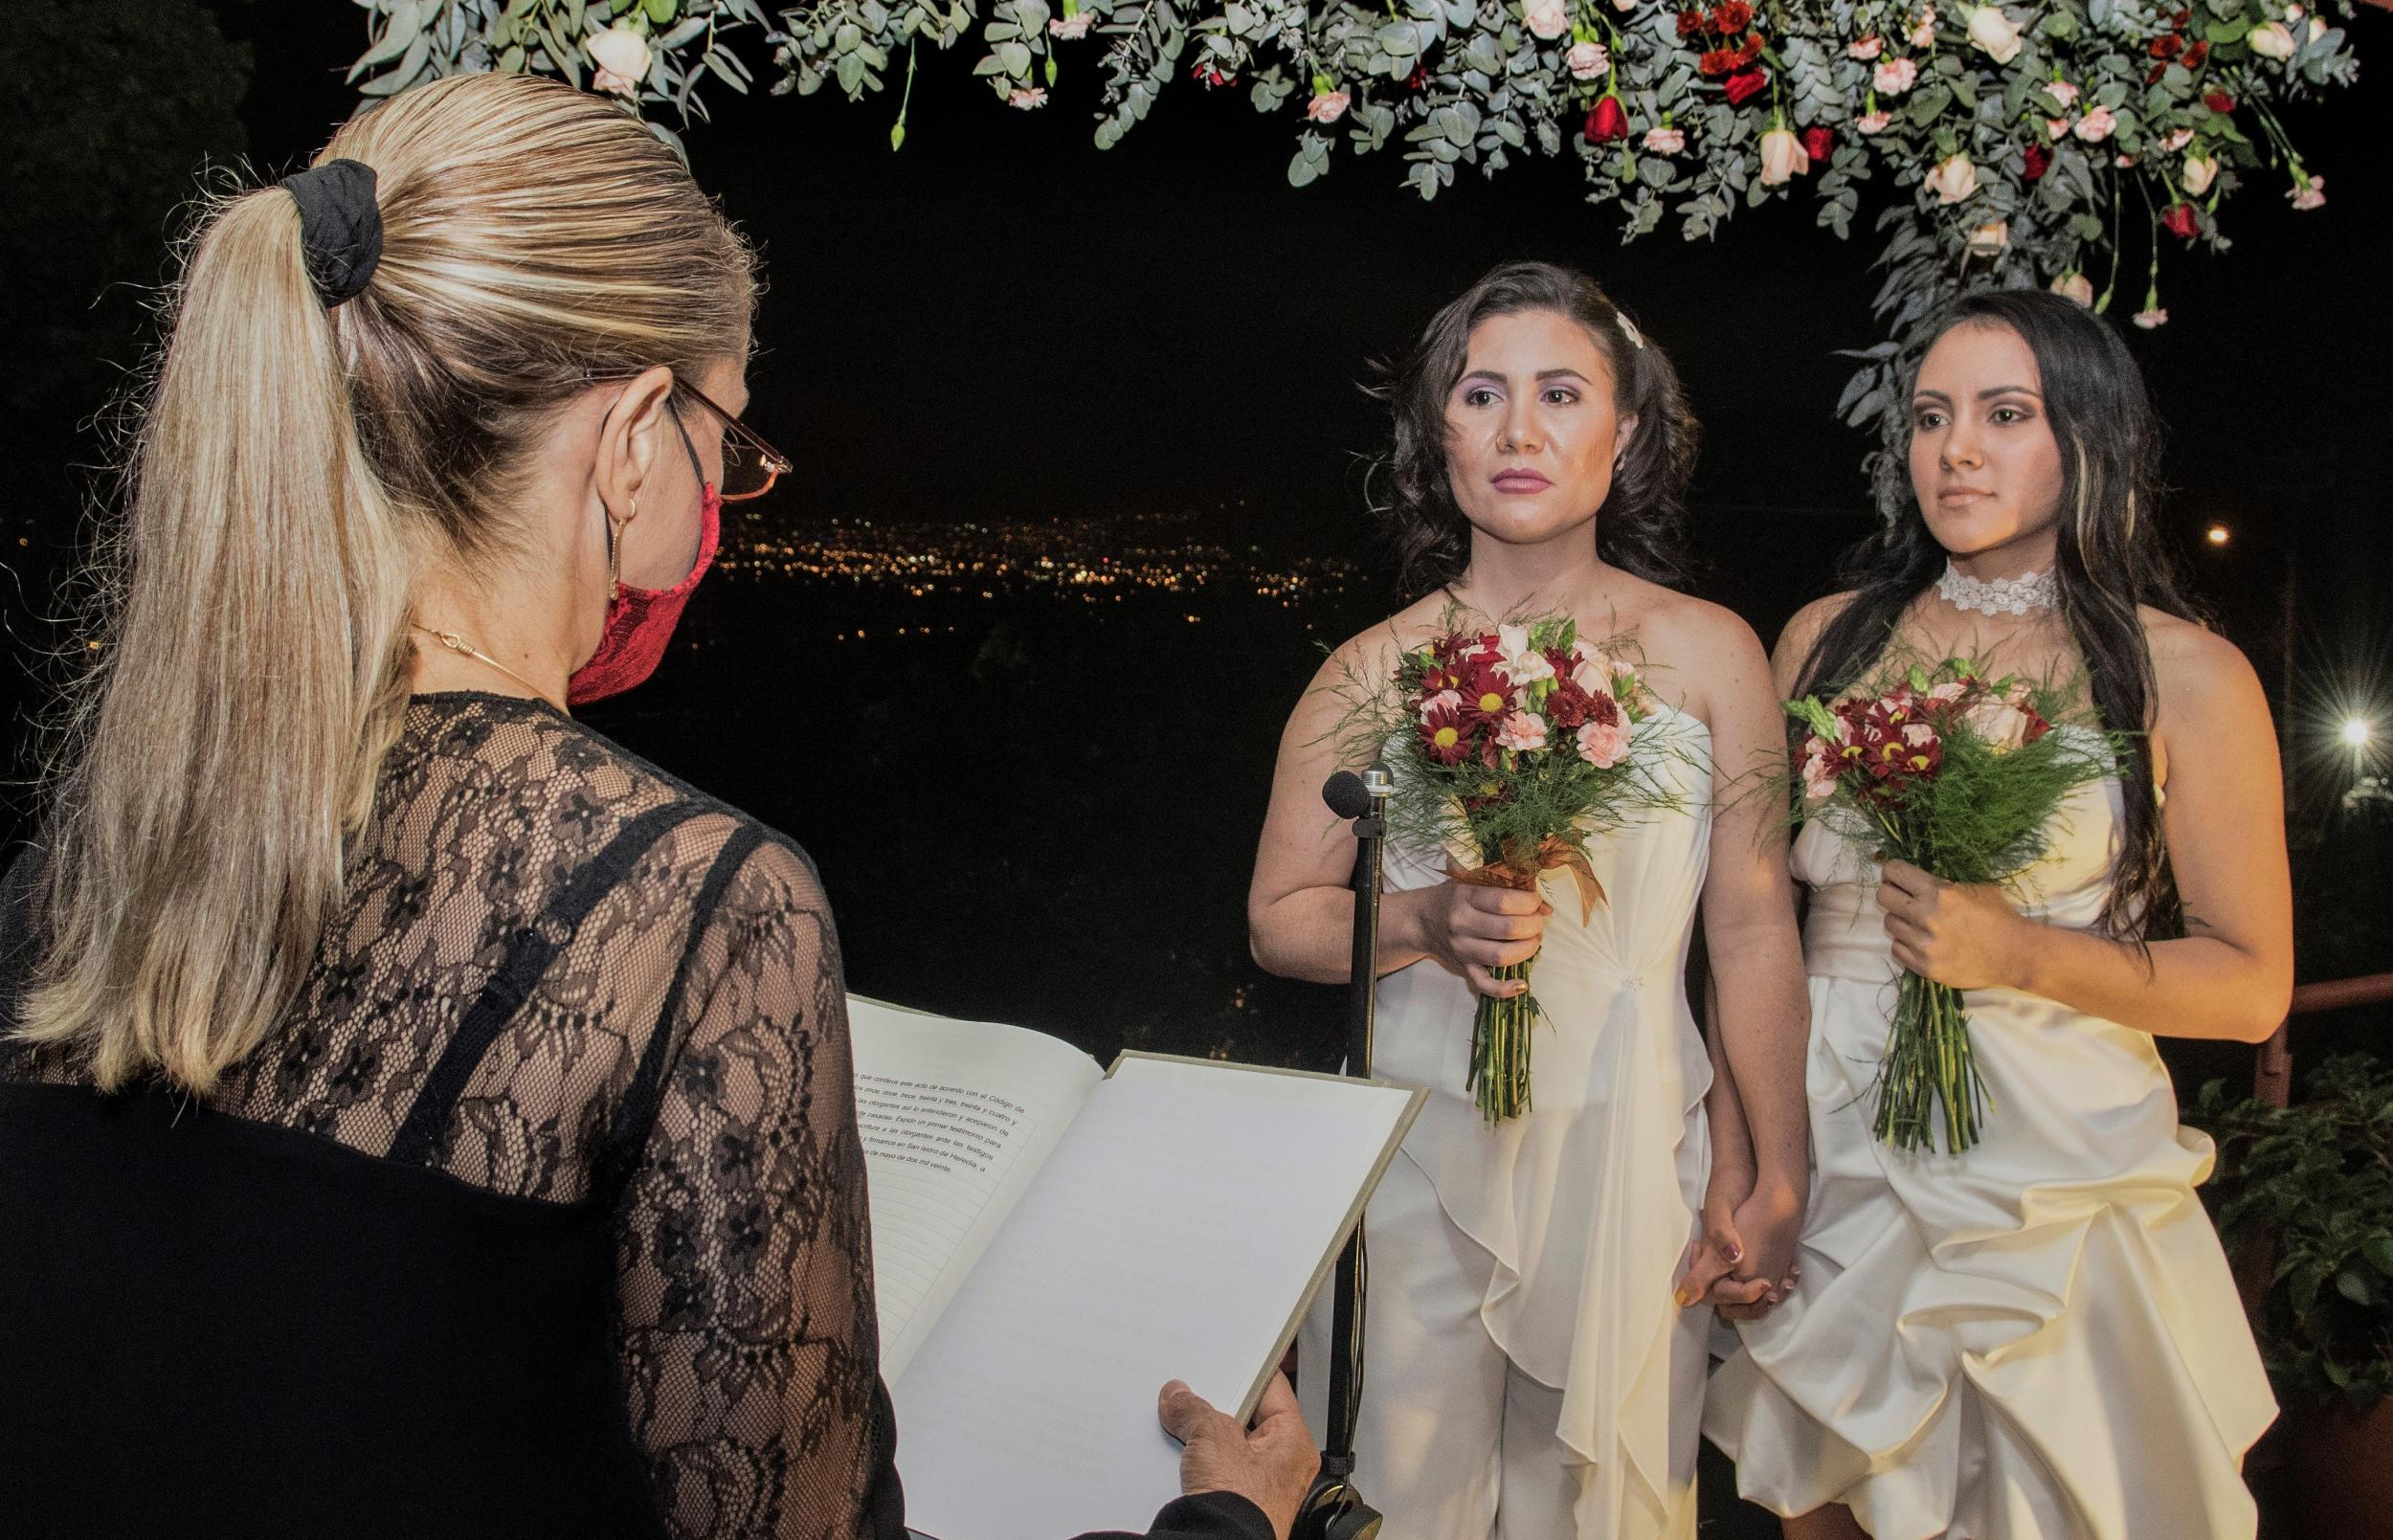 Costa Rica legalises same-sex marriages in first for Central America